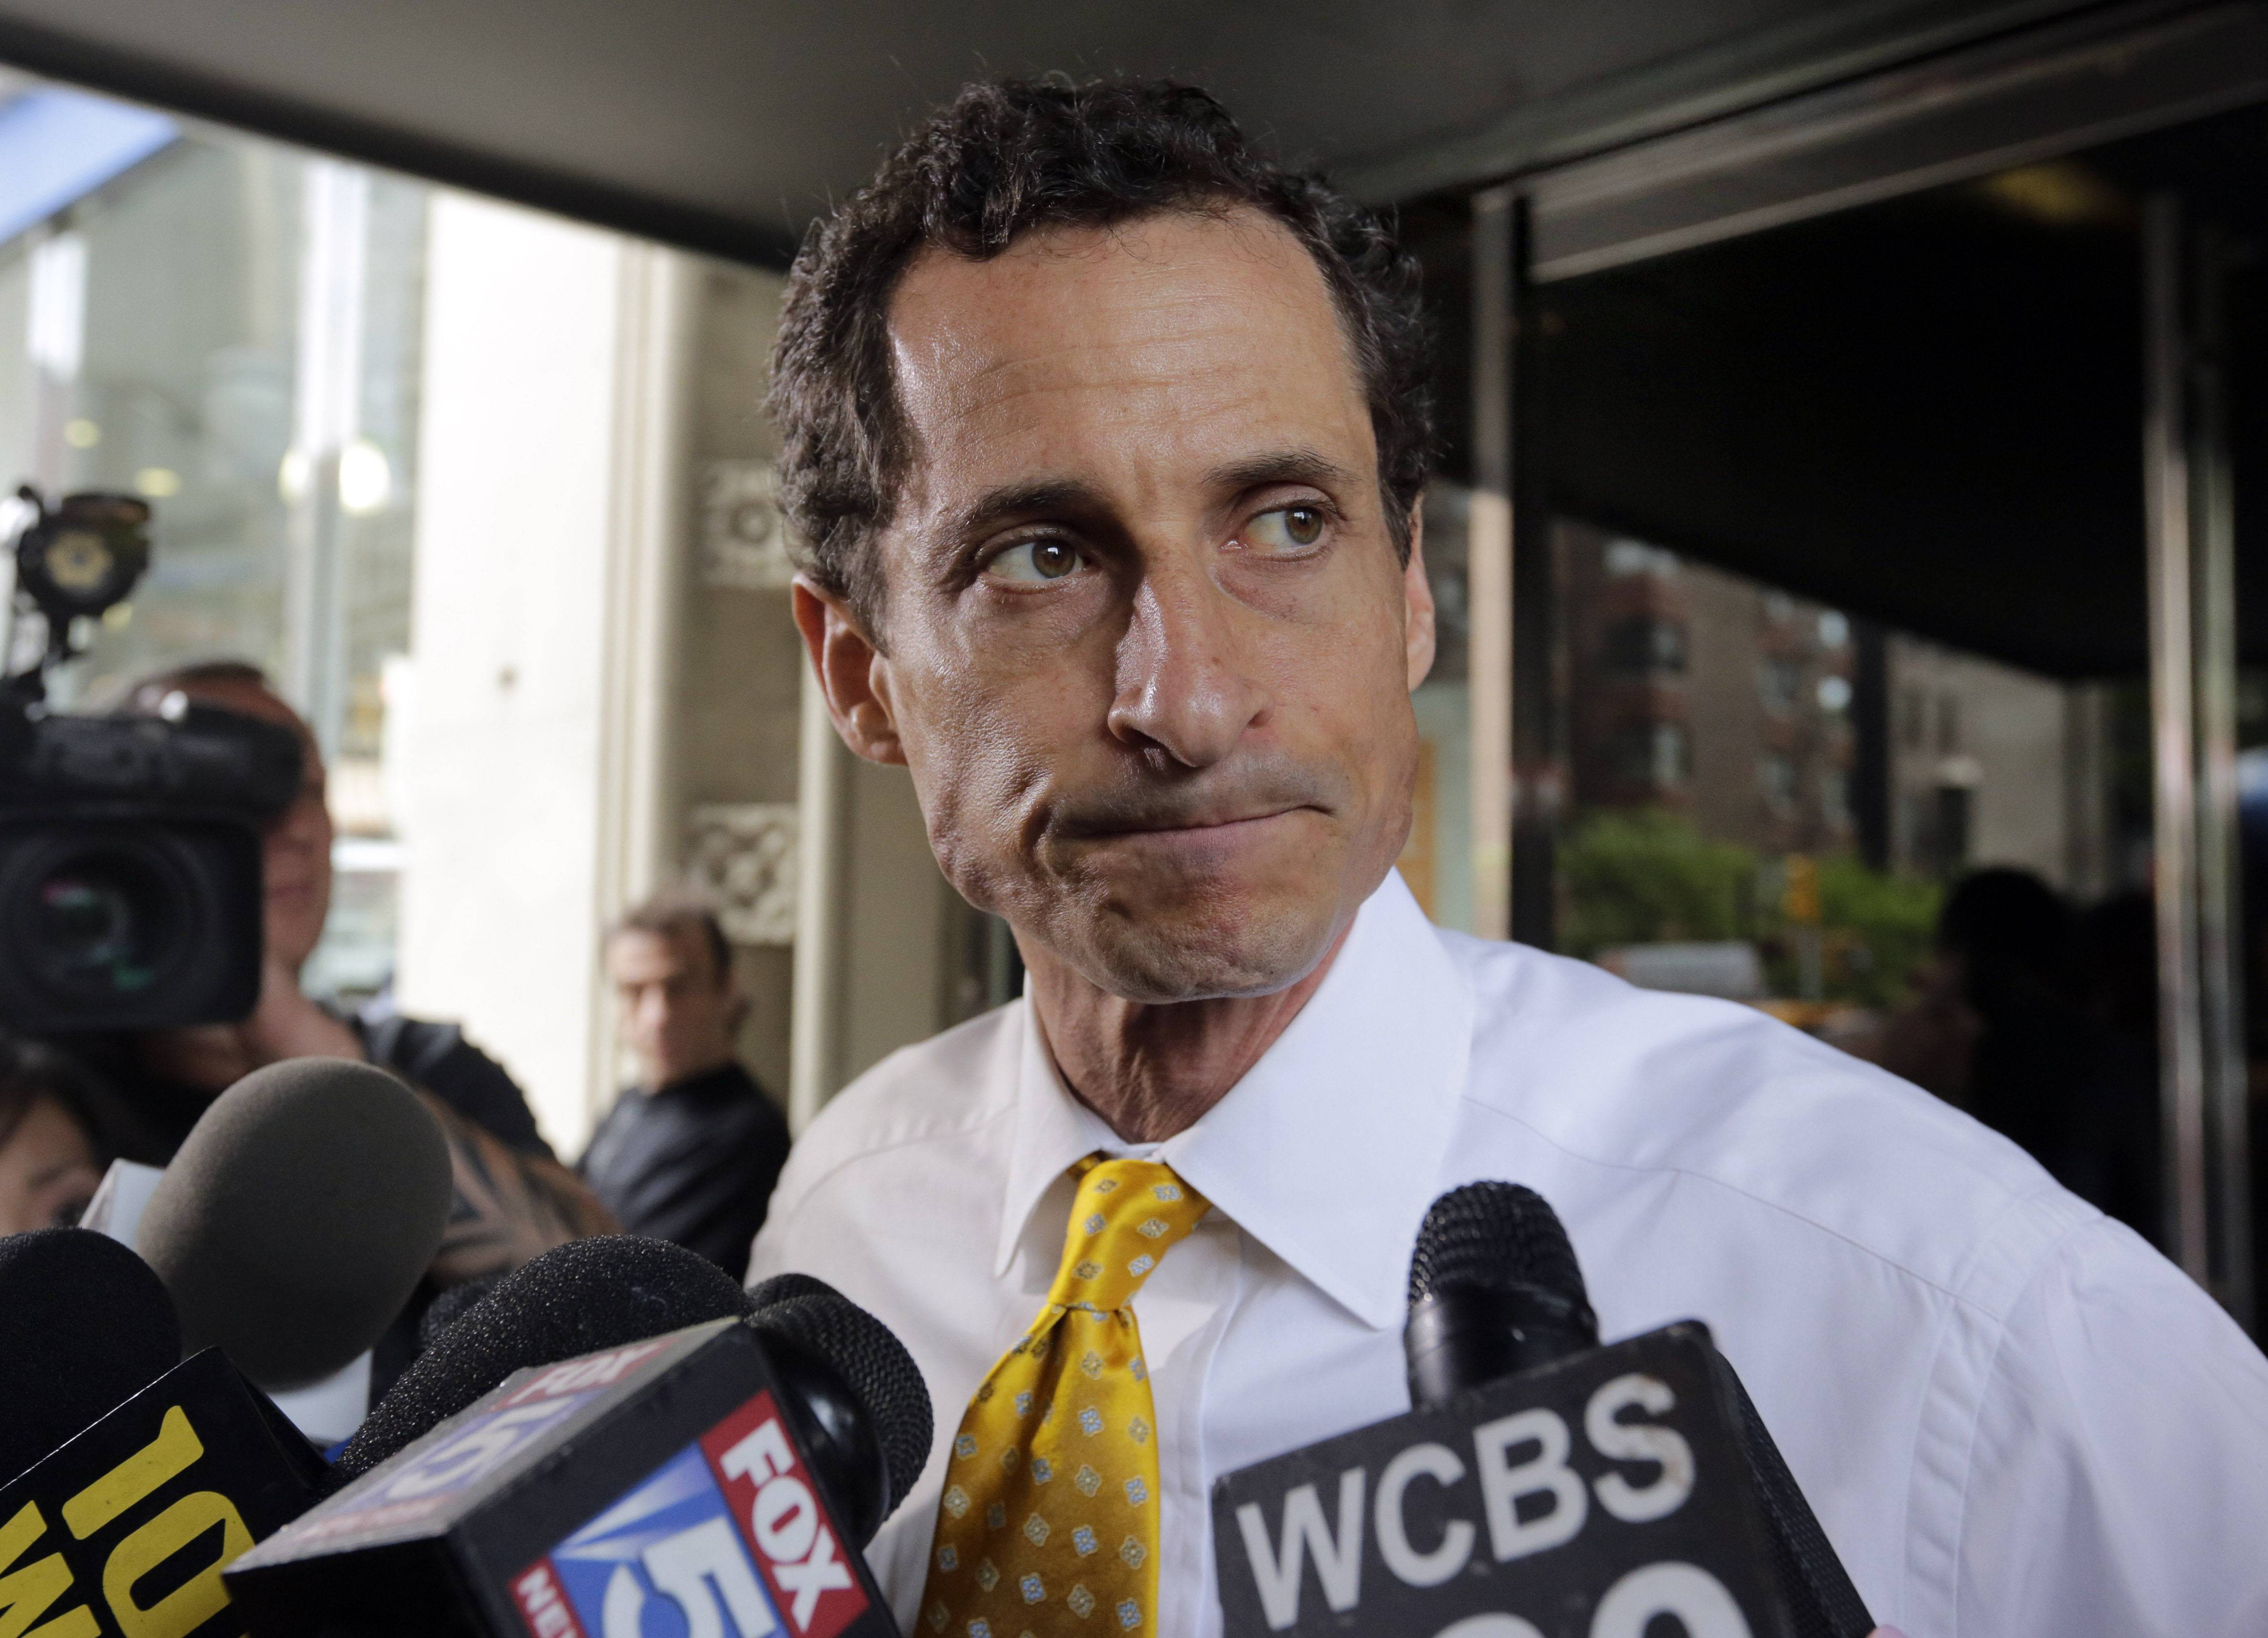 Former U.S. Rep. Anthony Weiner has pleaded guilty to transmitting sexual material to a minor and could get years in prison. Weiner agreed Friday not to appeal any sentence between 21 and 27 months in prison.